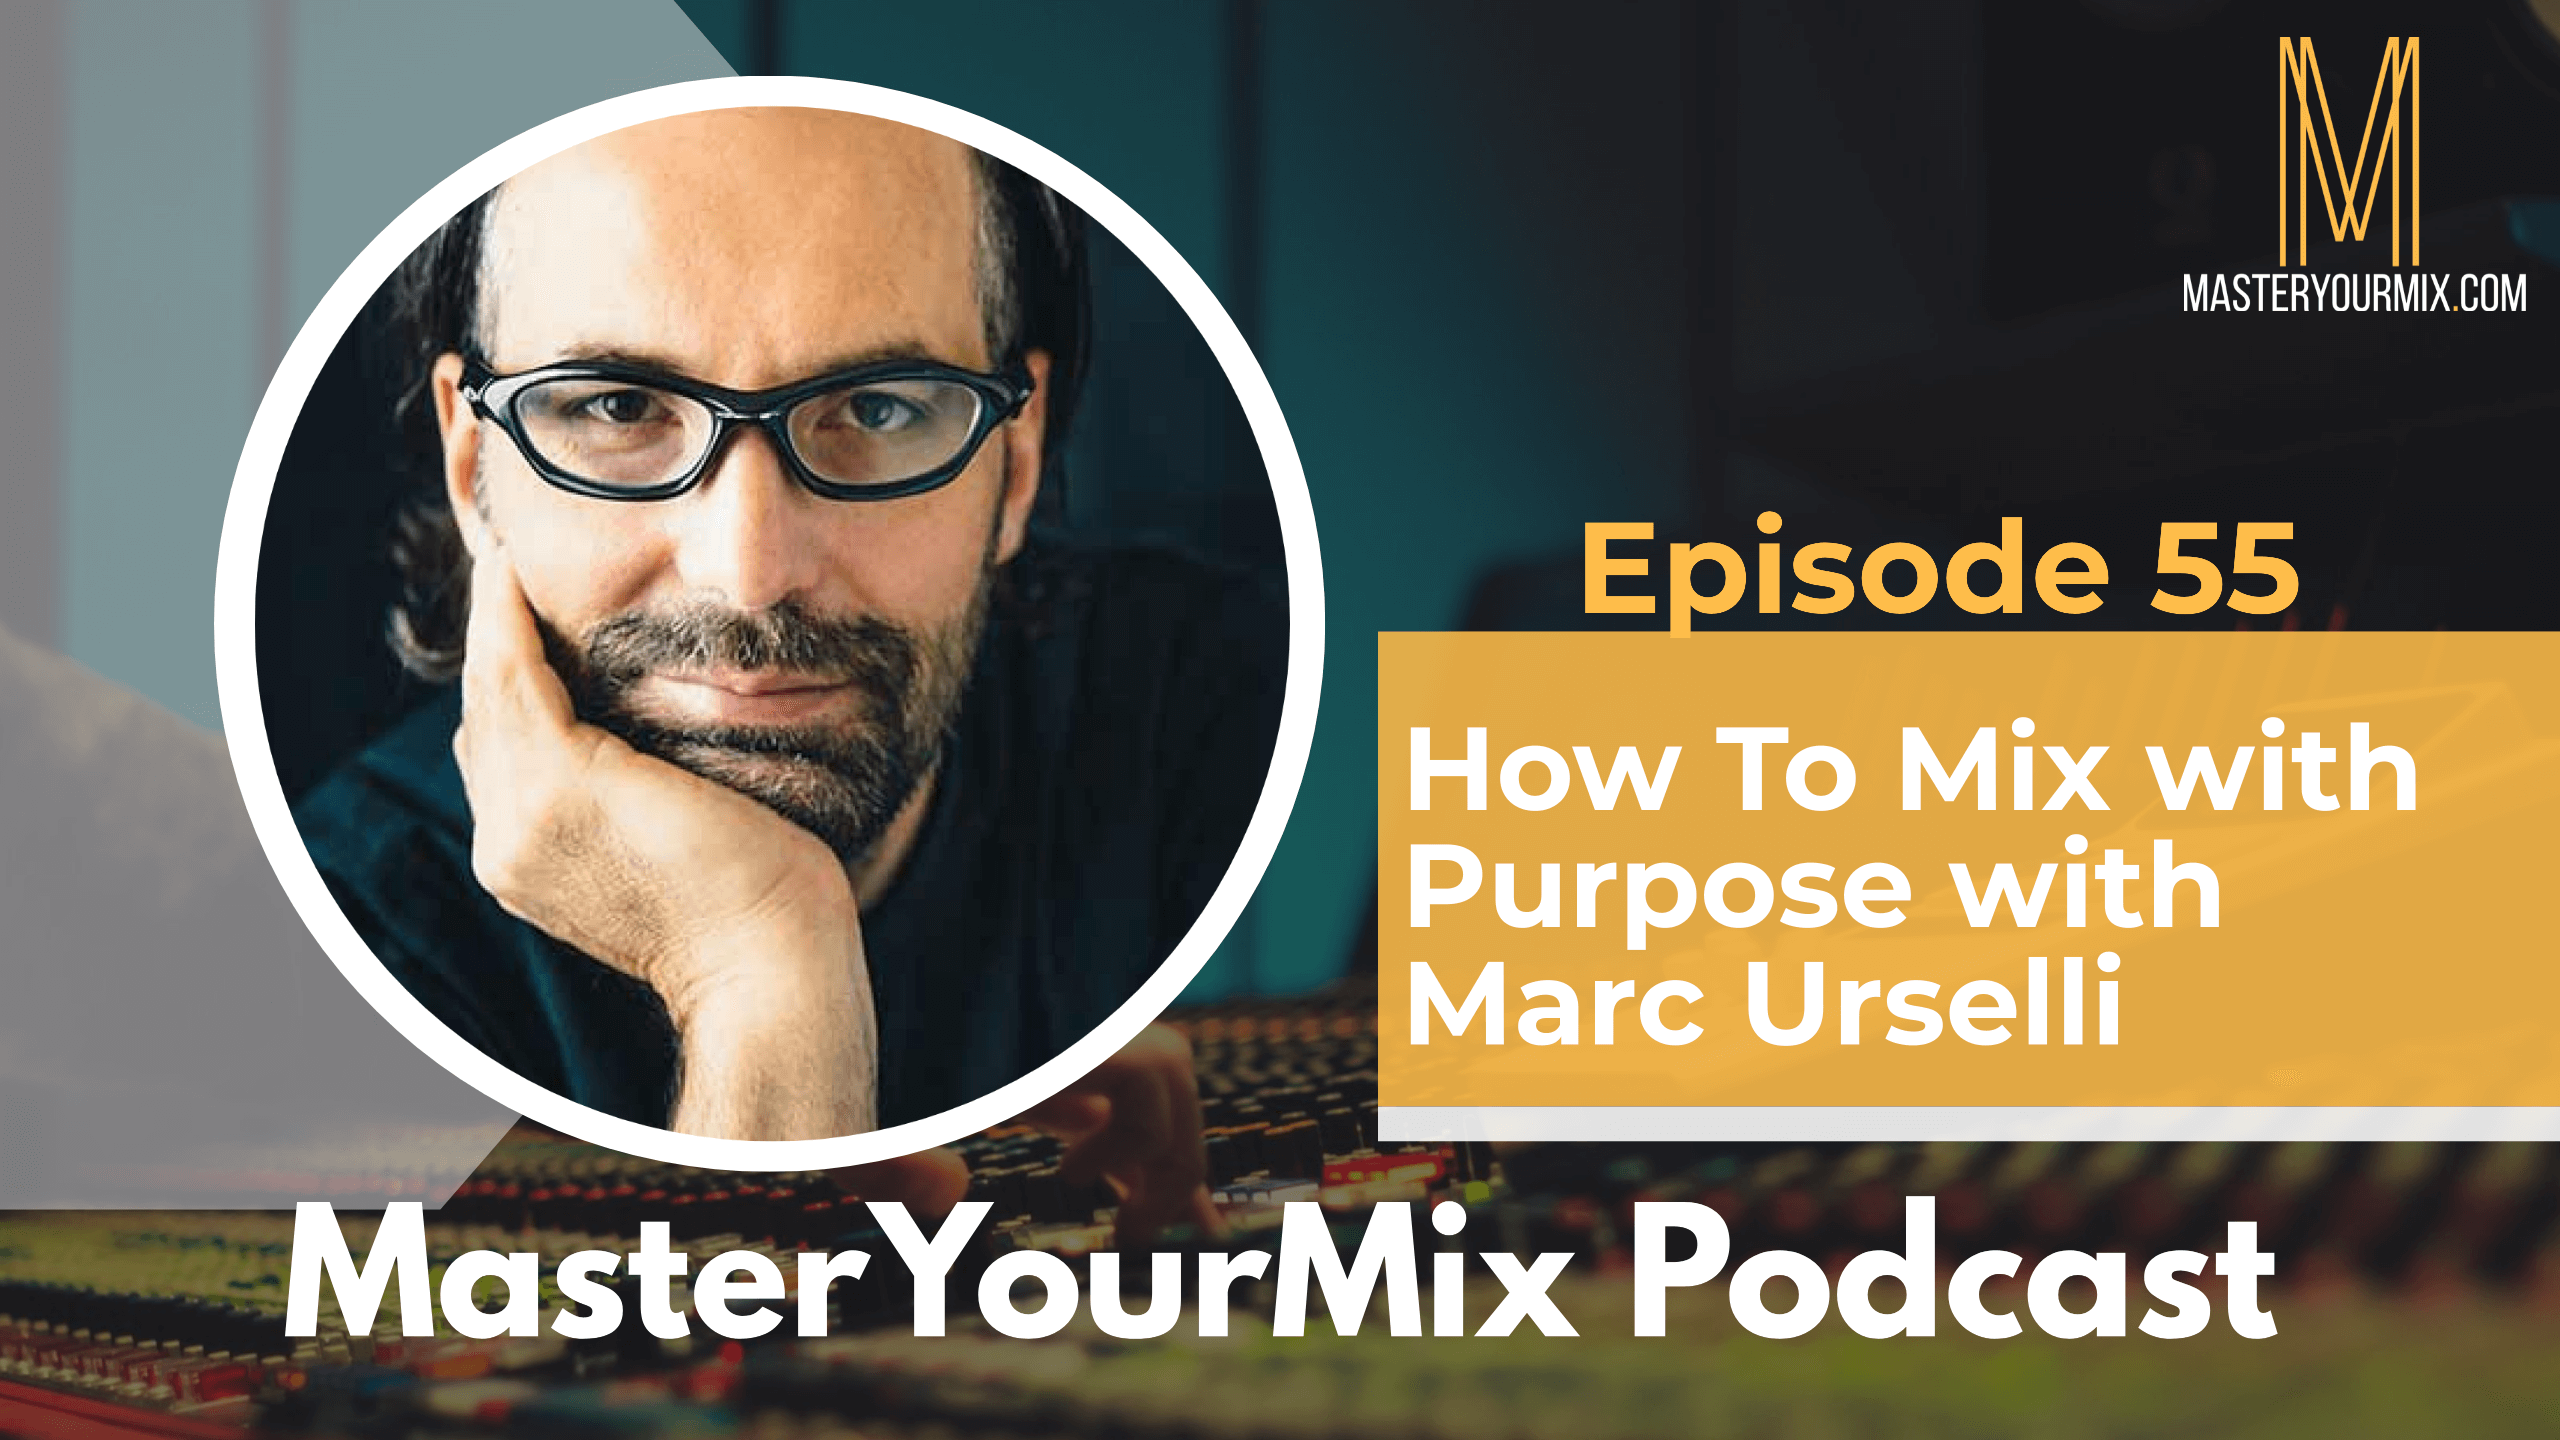 master your mix podcast, marc urselli, episode 55